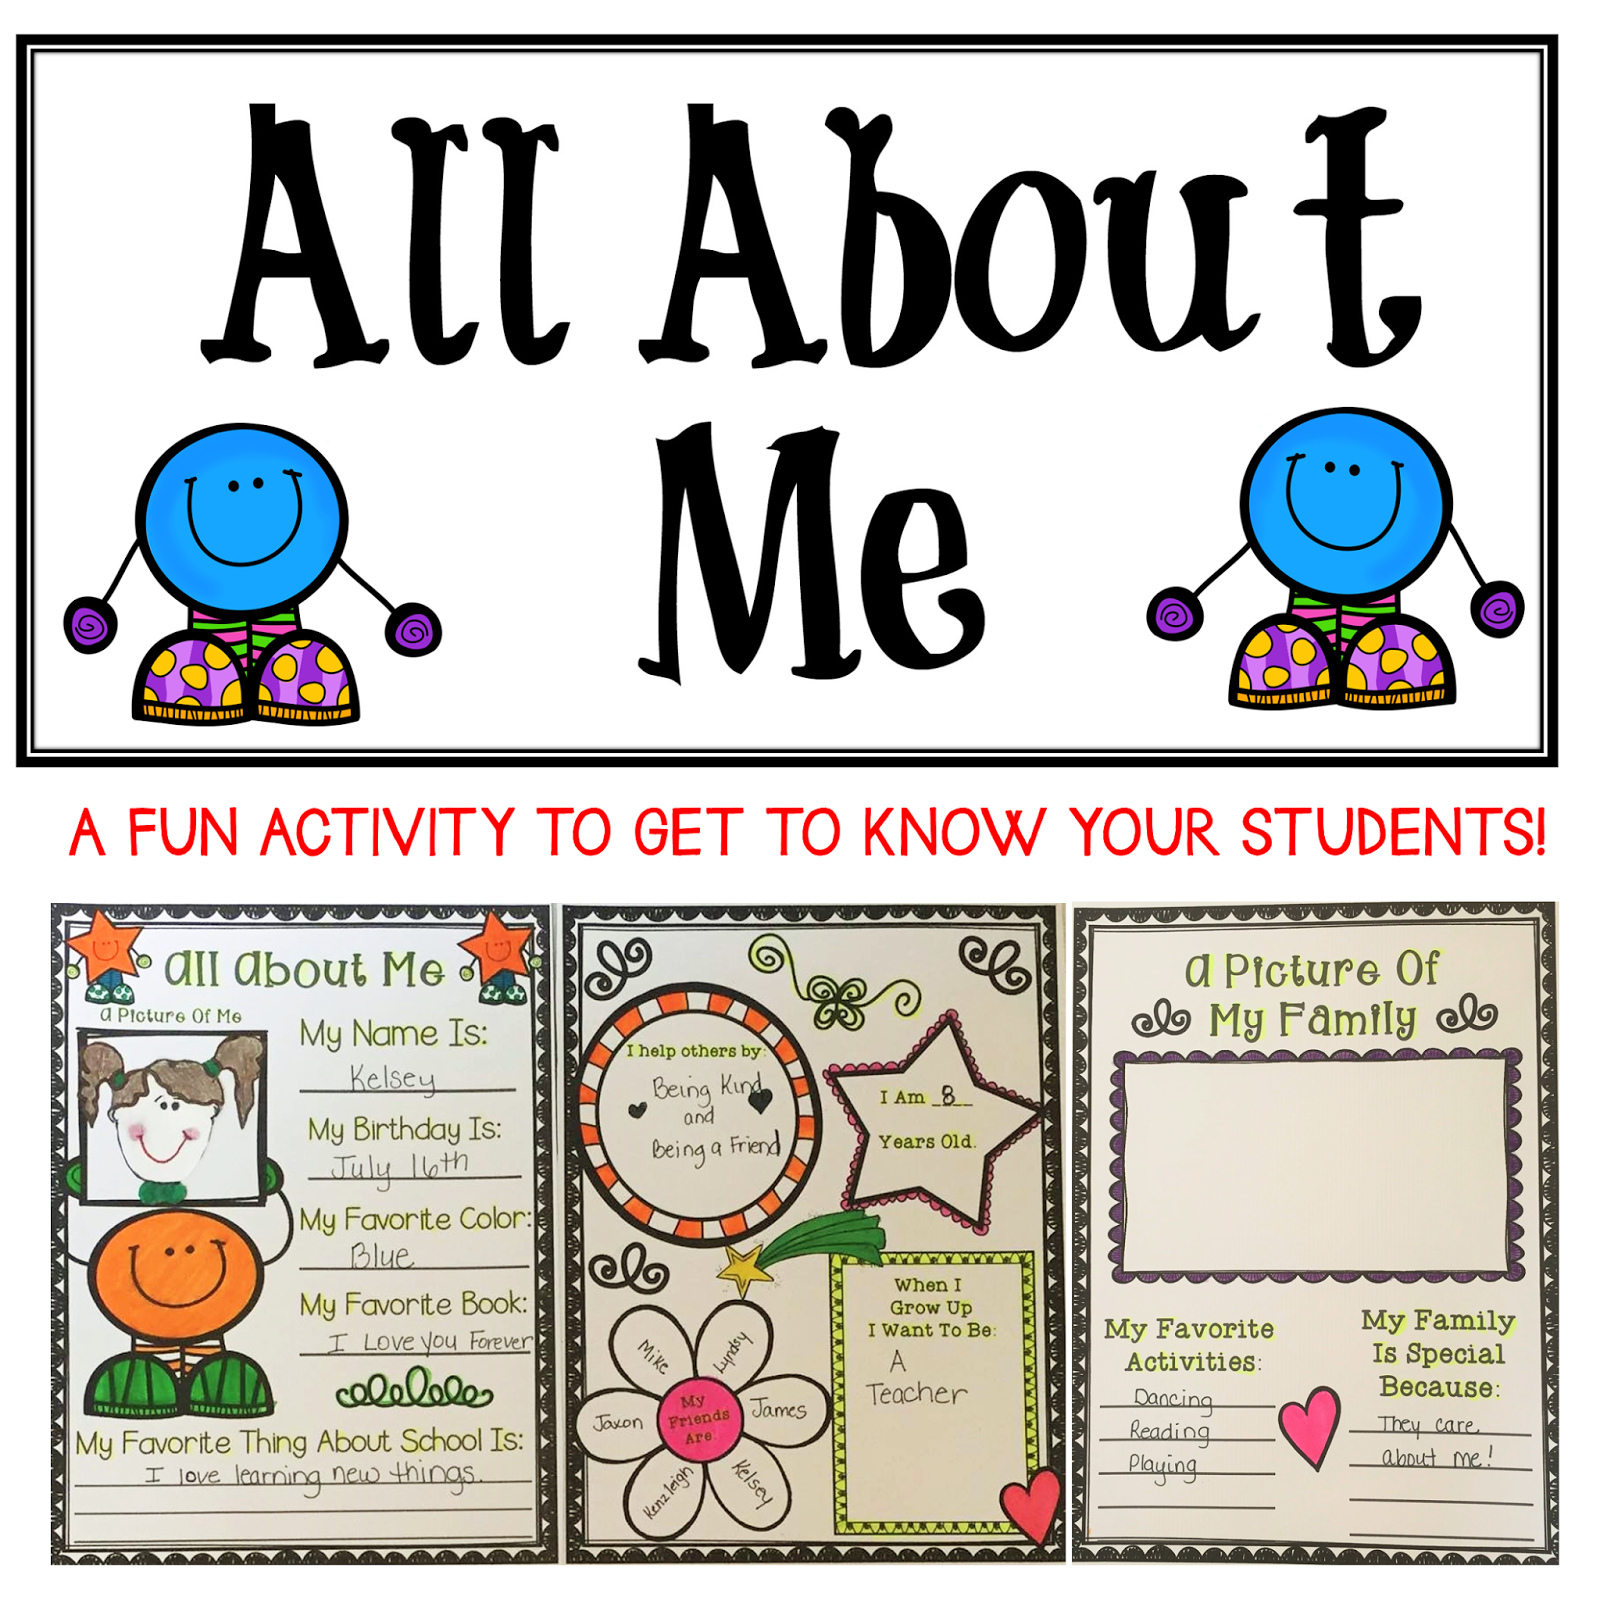 The Best Of Teacher Entrepreneurs All About Me Activity For The Classroom